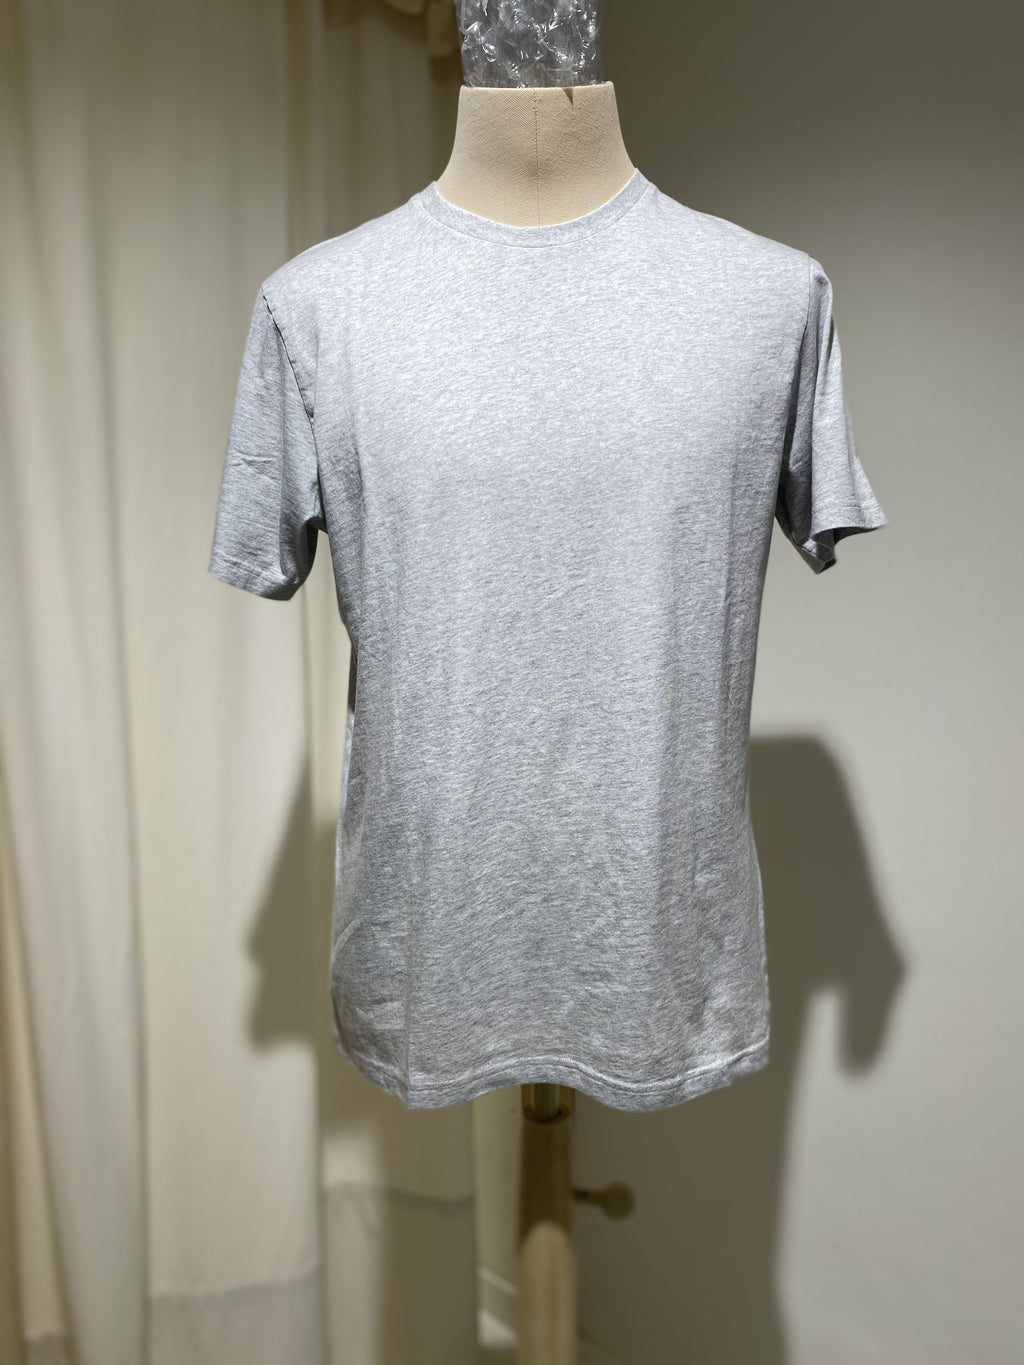 M T-SHIRT COLORFUL STANDARD - LIGHT GREY MELANGE